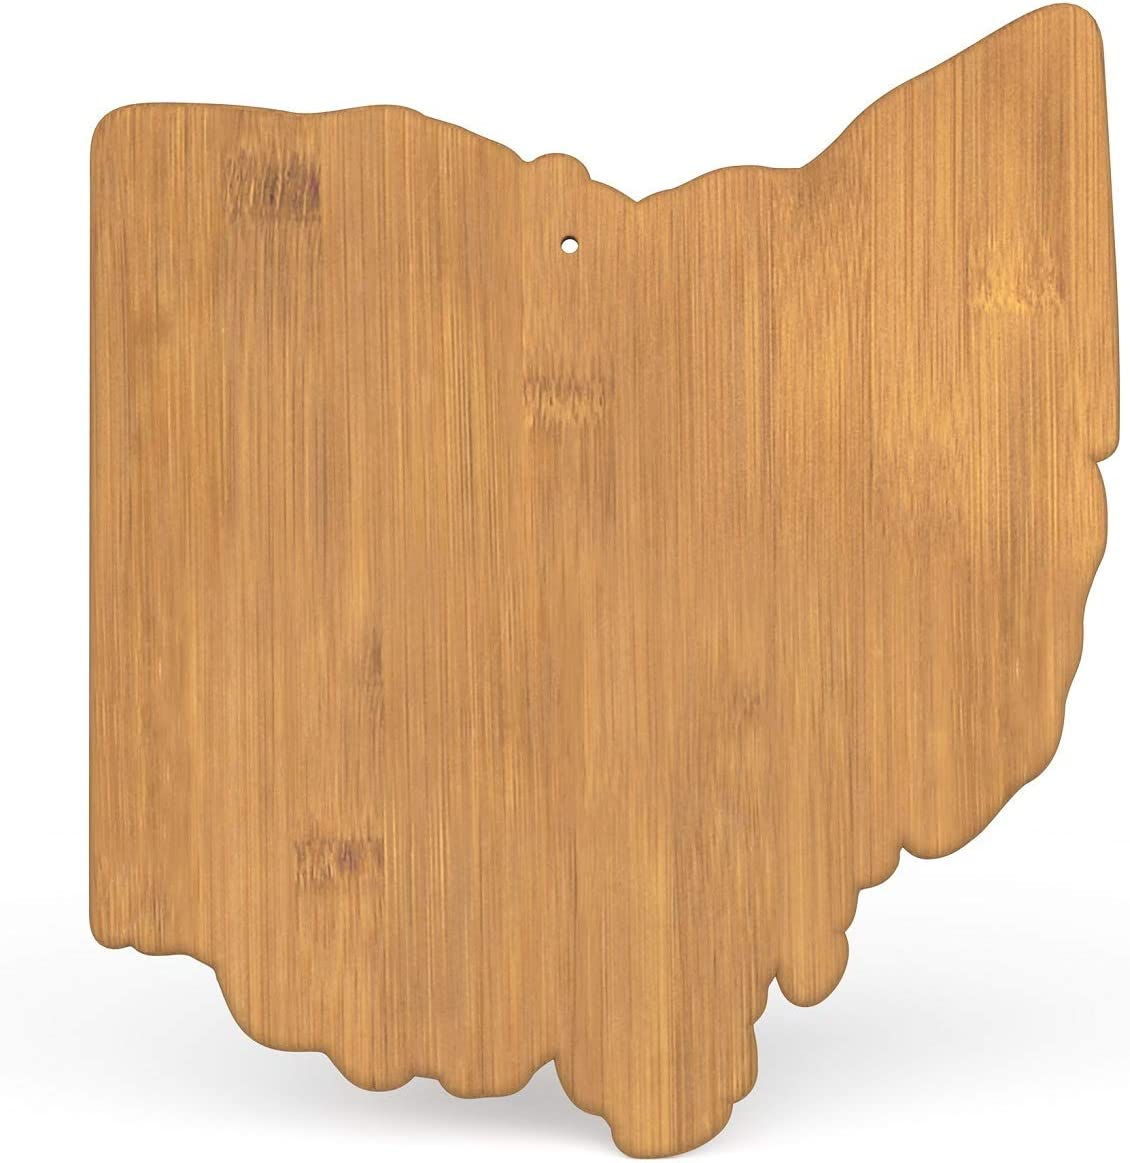 Ohio Bamboo Serving Board, Ohio State Shaped Cutting Board, Souvenirs from Ohio, Cincinnati Cheese board, Buckeye Serving Dish, Ohio Shaped Decor for Kitchen, Columbus Serving Plate